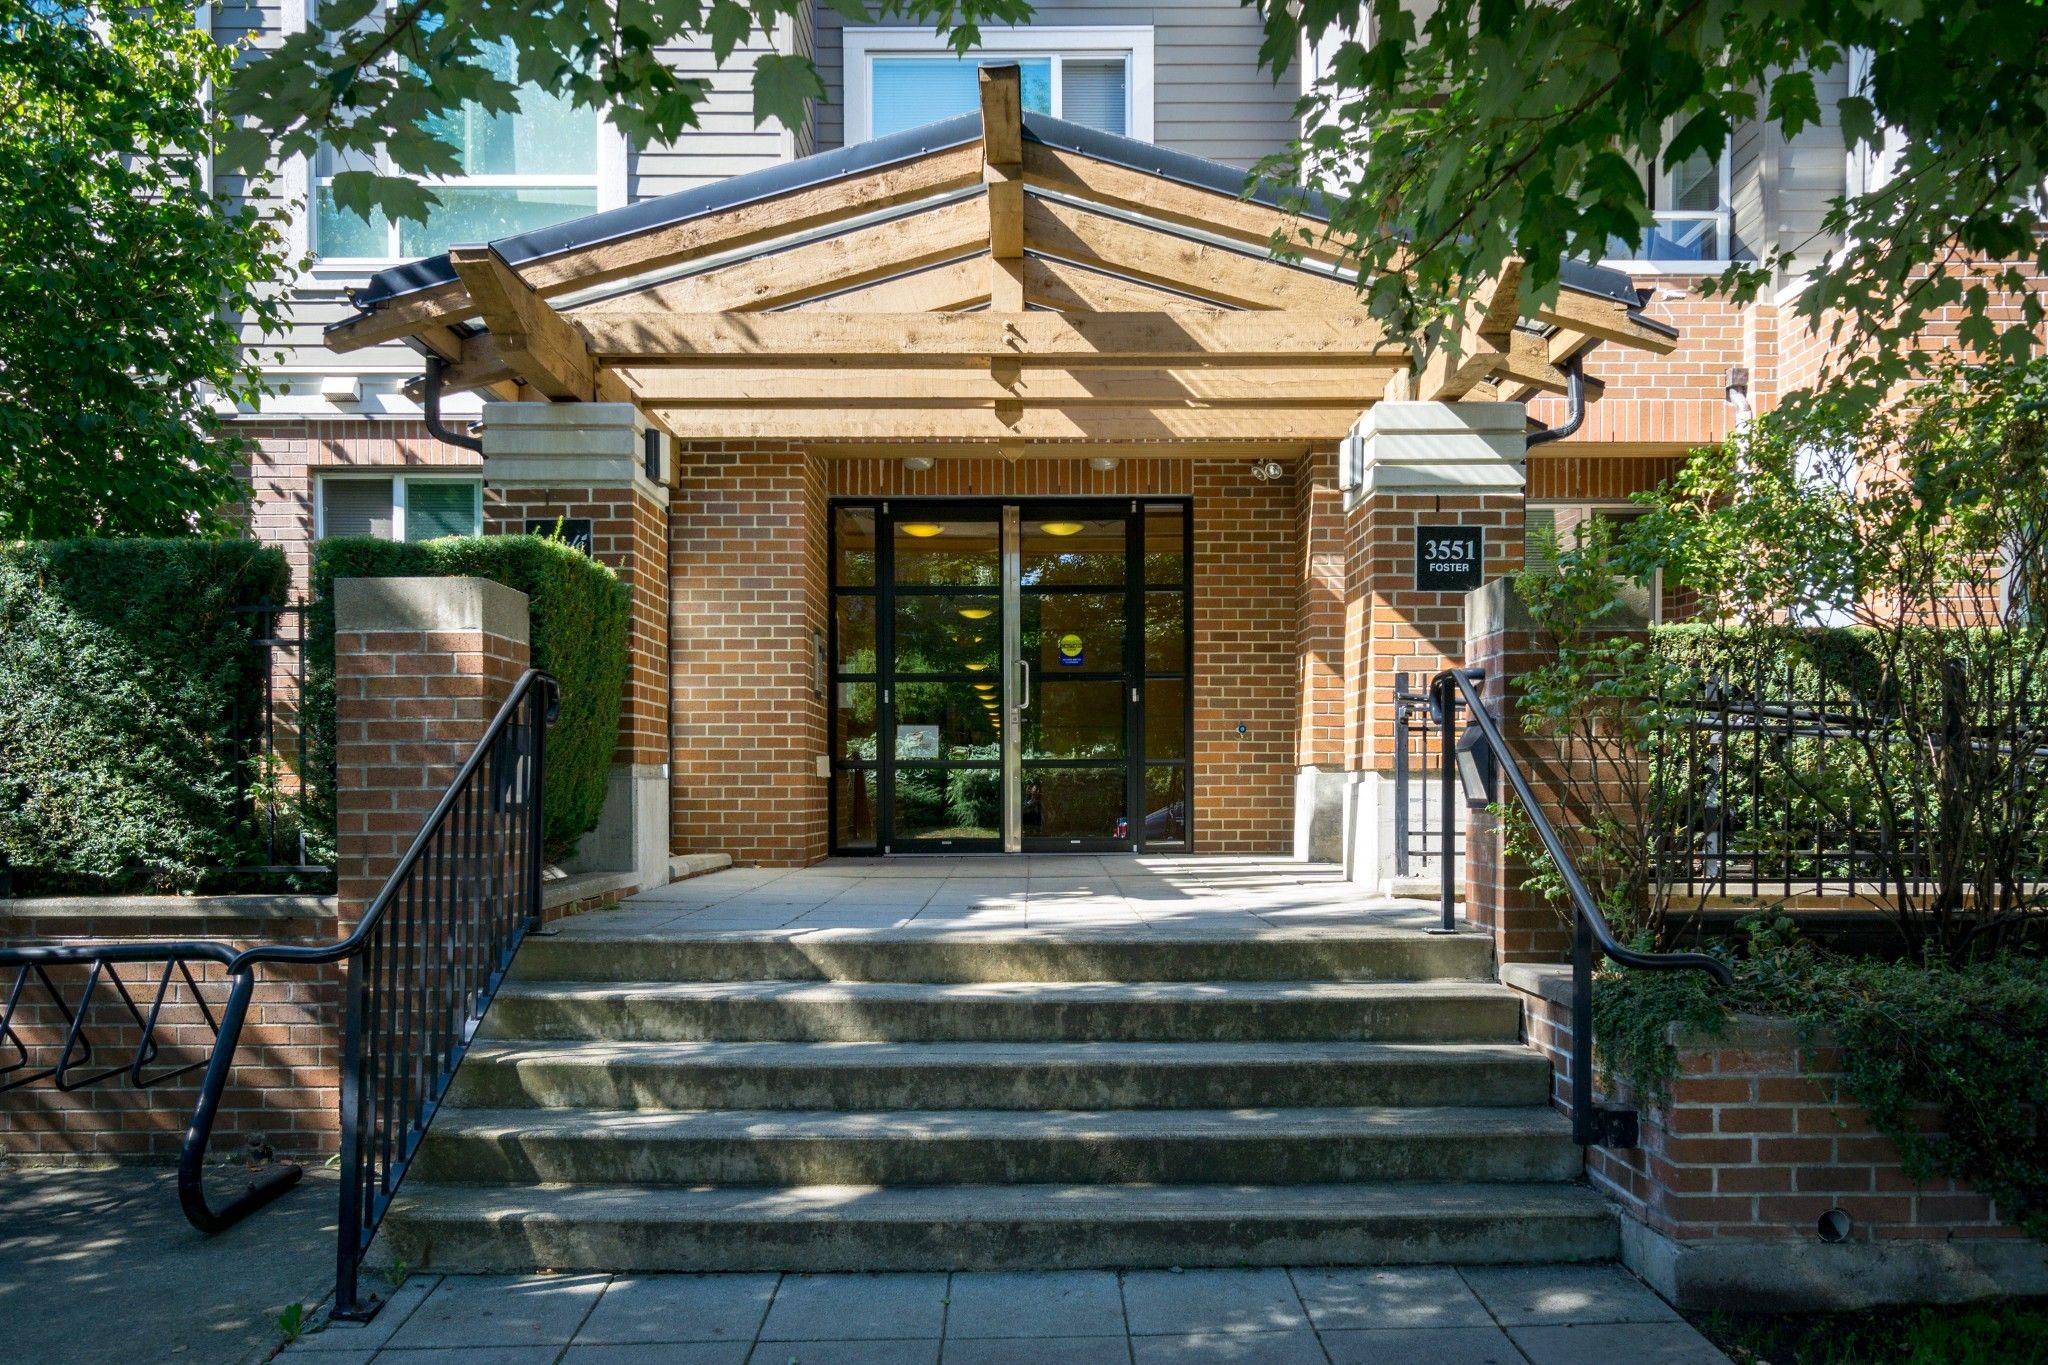 Photo 26: Photos: 208 3551 FOSTER Avenue in Vancouver: Collingwood VE Condo for sale (Vancouver East)  : MLS®# R2291555